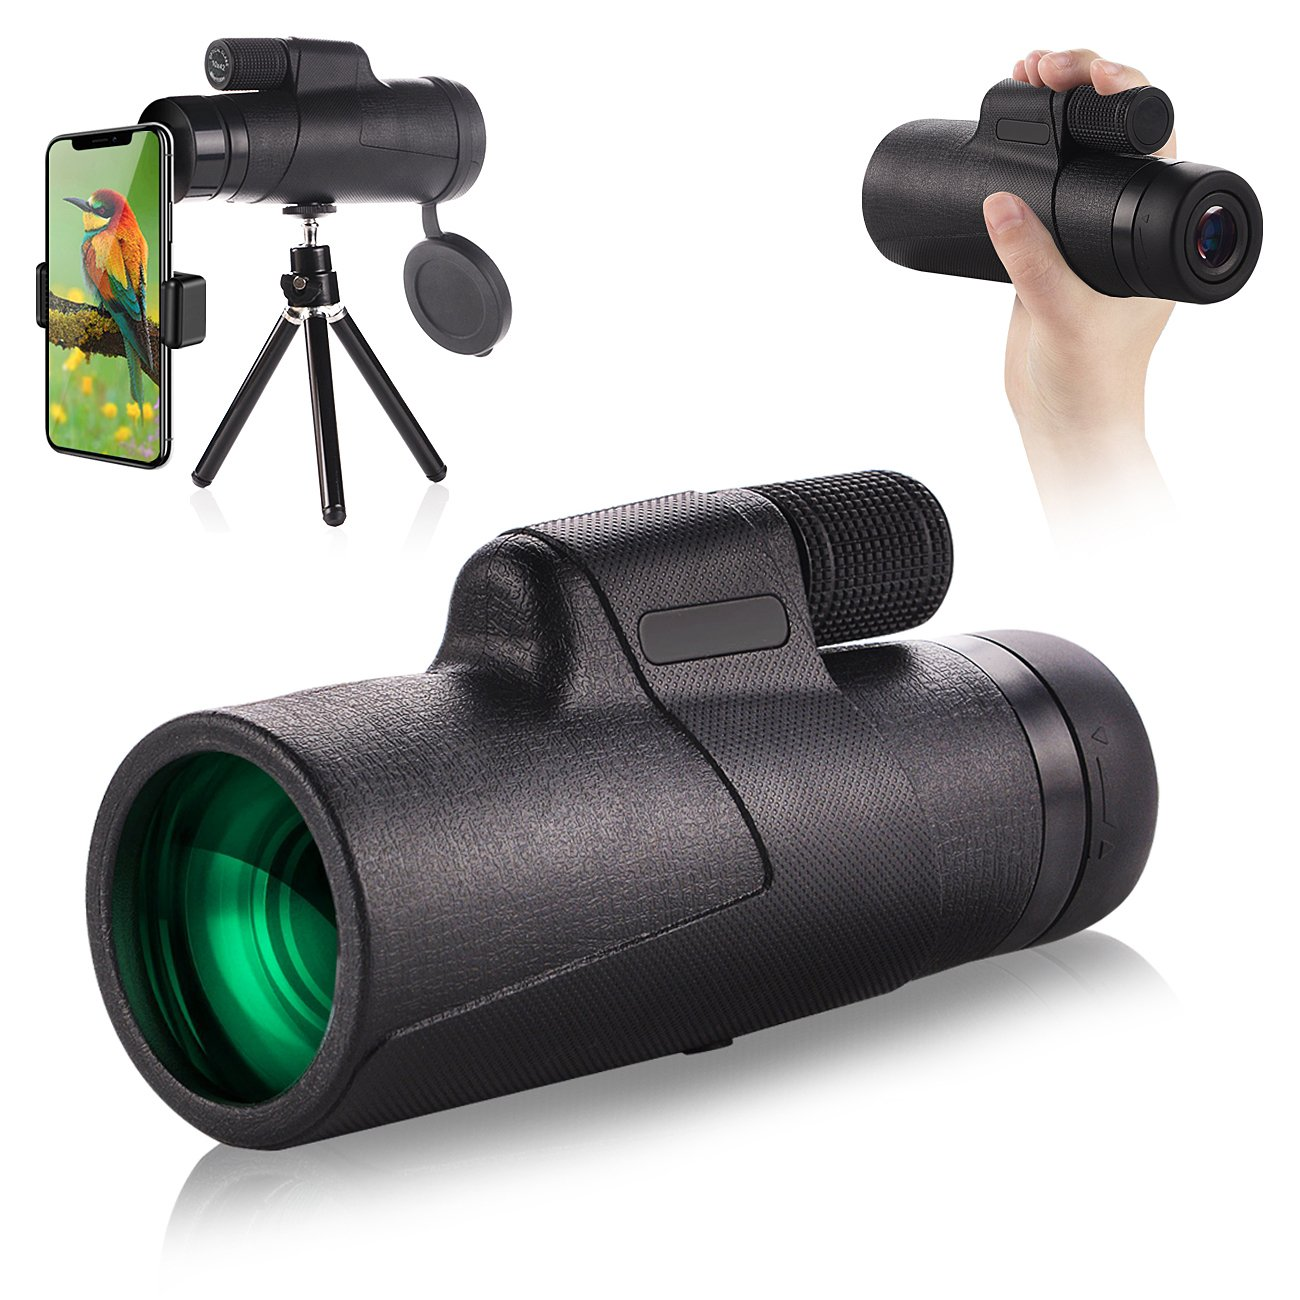 Waterproof Monocular Scope - 10x42 High Power Prism Monocular and Quick Smartphone Holder - Waterproof Fog- proof Shockproof Scope -BAK4 Prism FMC for Bird Watching Hunting Camping Travelling Wildlife